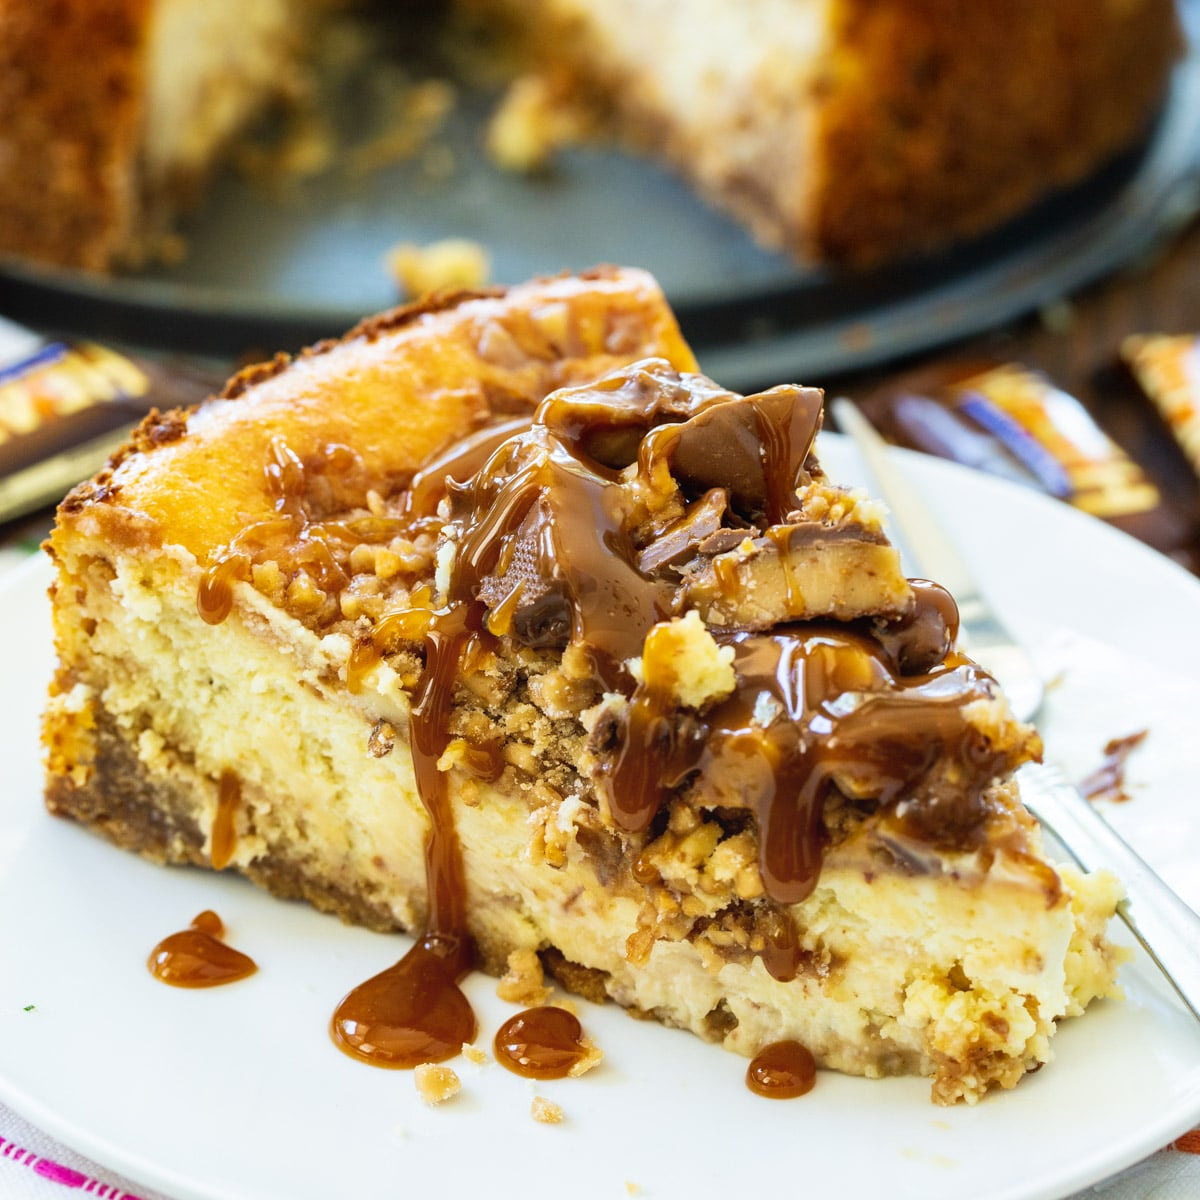 English Toffee Cheesecake slice on a plate.